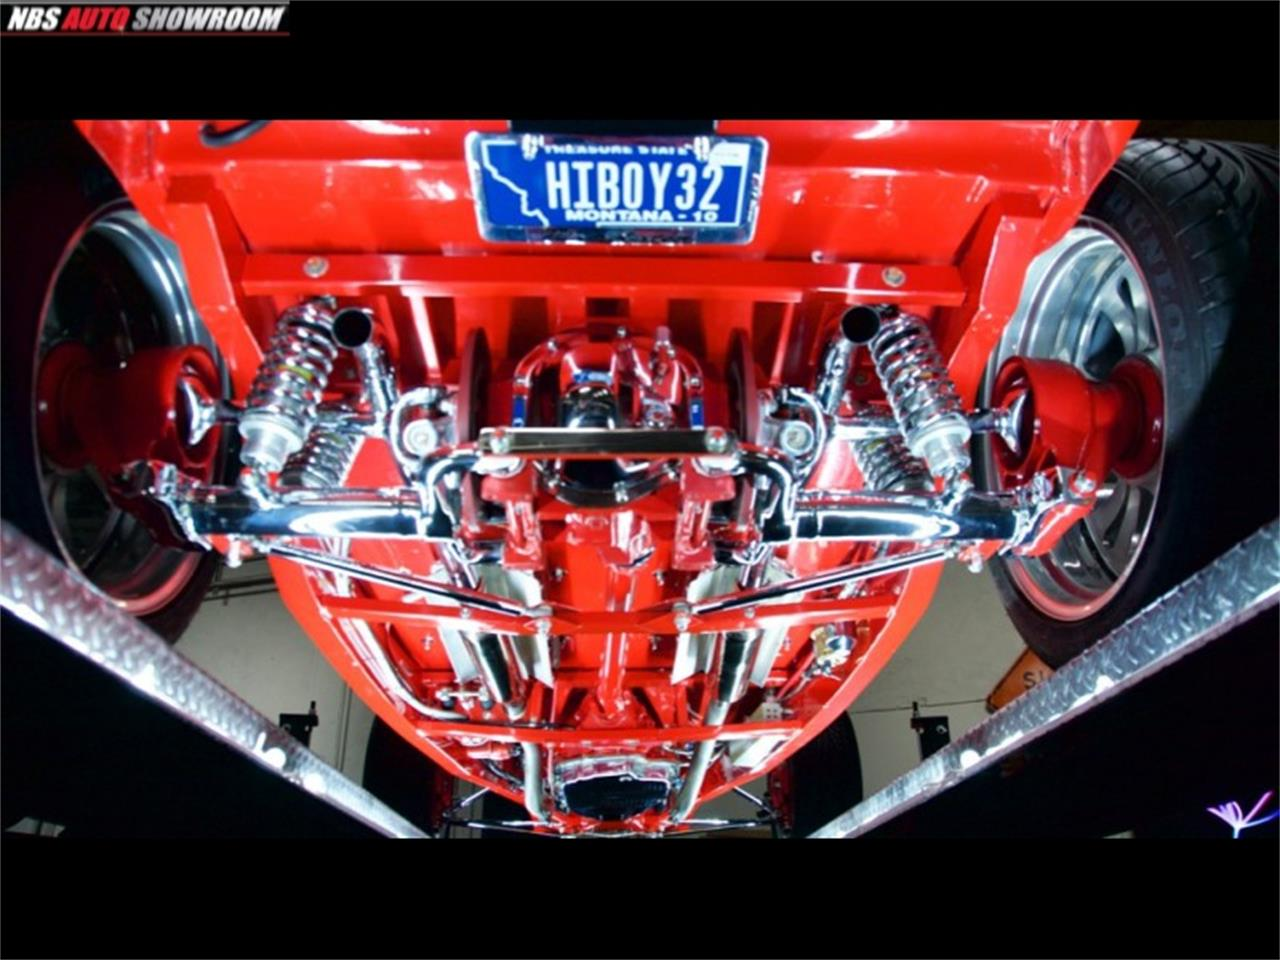 Large Picture of Classic '32 Ford Roadster - $37,546.00 Offered by NBS Auto Showroom - QY4R